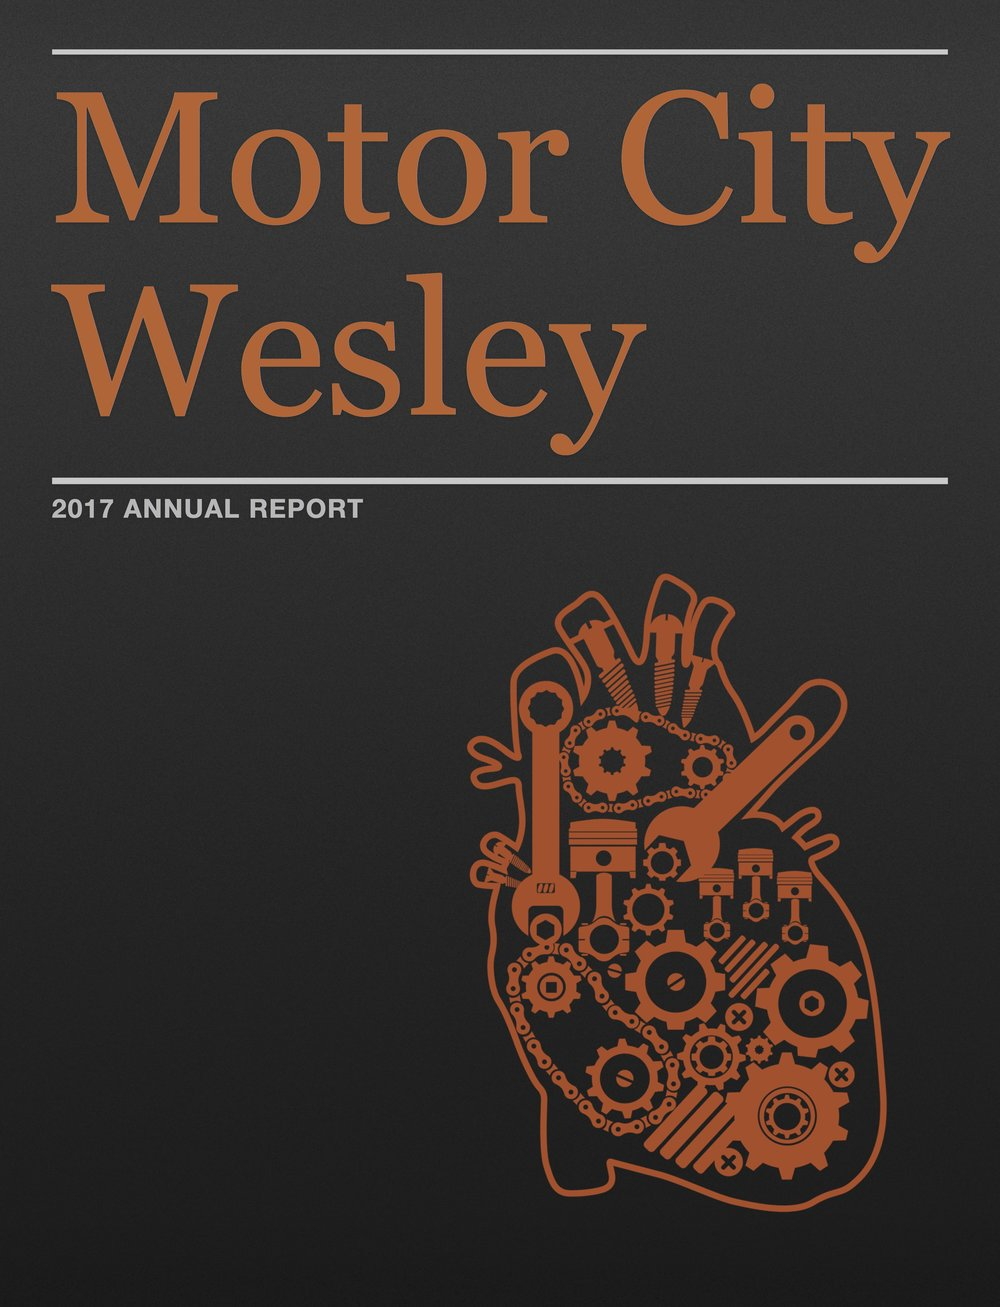 CONSPIRICITY  - Check out the story of this year's #motowesley here.